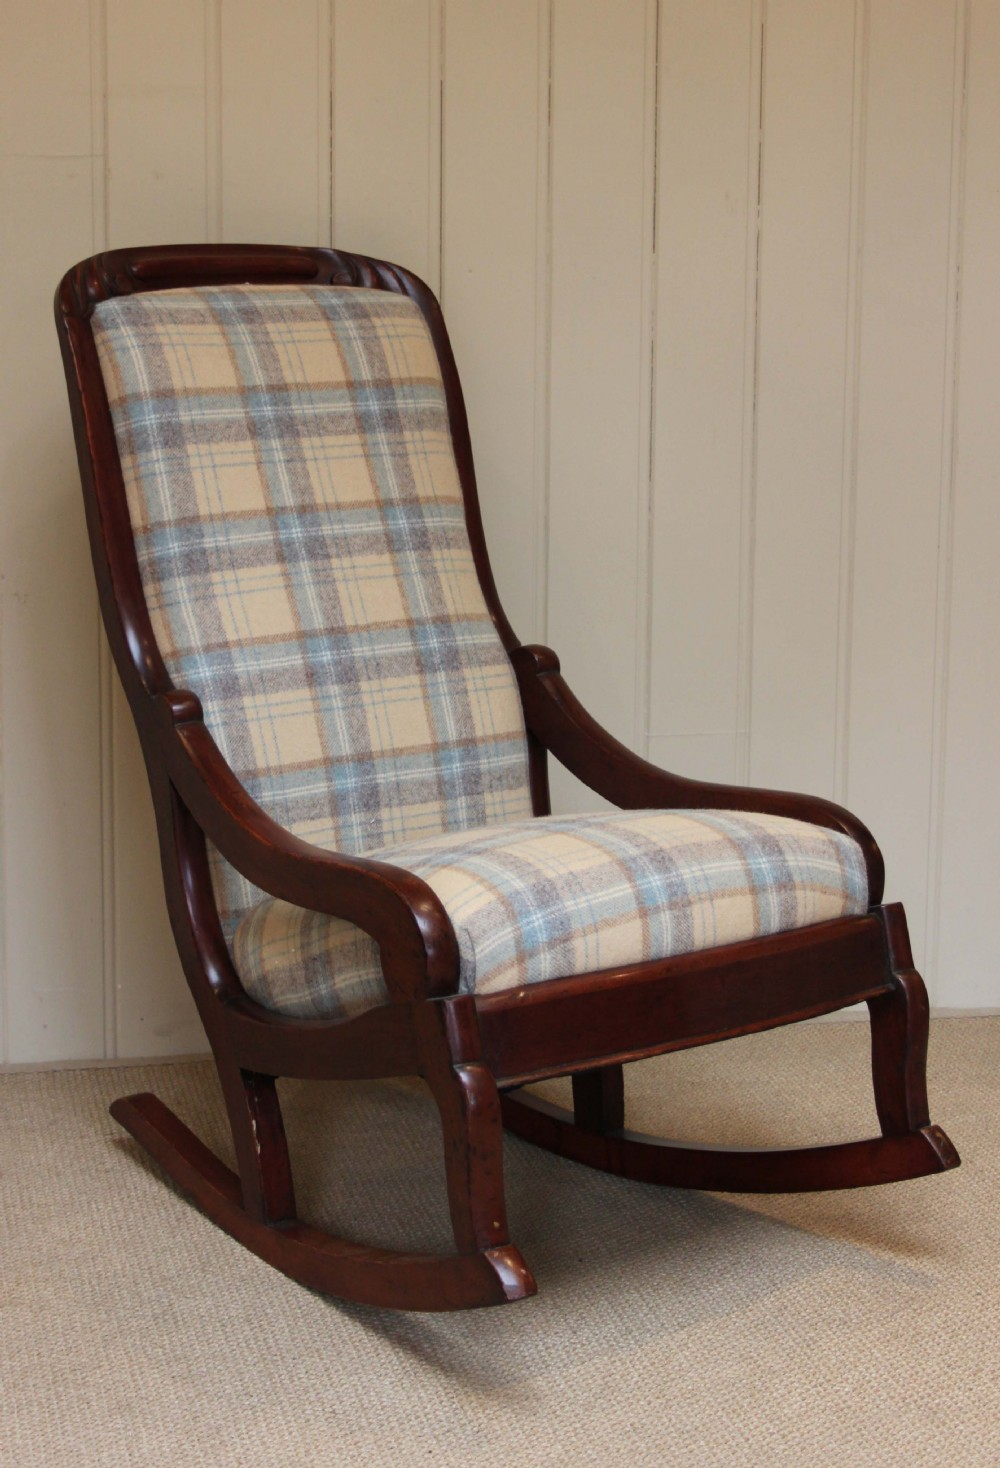 Late Victorian Upholstered Rocking Chair 244300